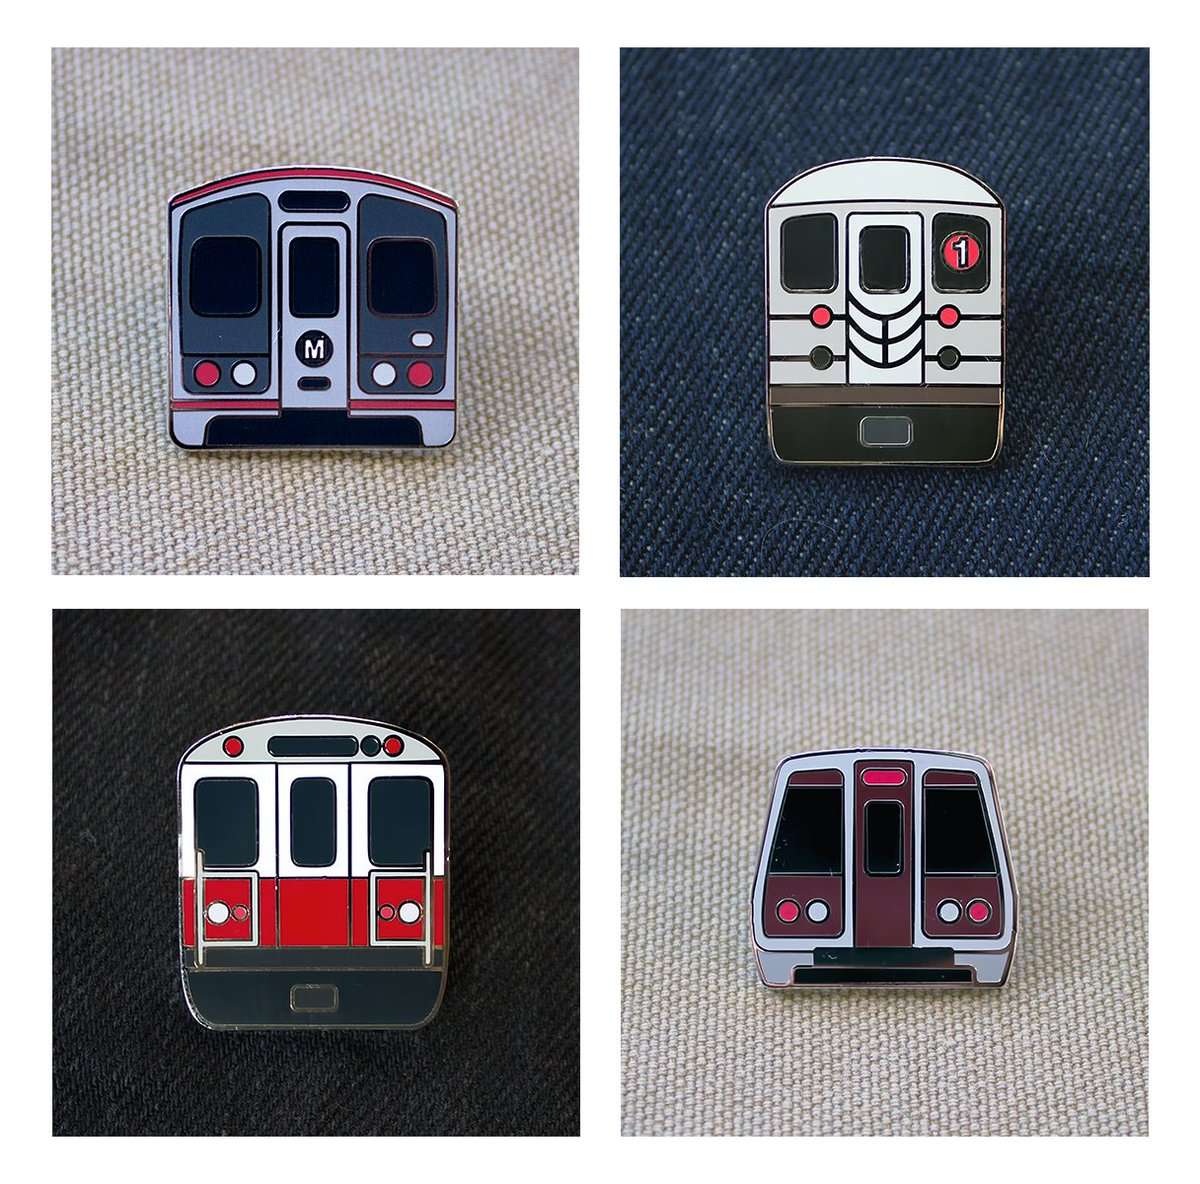 new enamel pins are up! la metro, nyc subway, mbta red line and dc metro  get them hurr ⬇️ https://transit.supply/collections/enamel-pins …